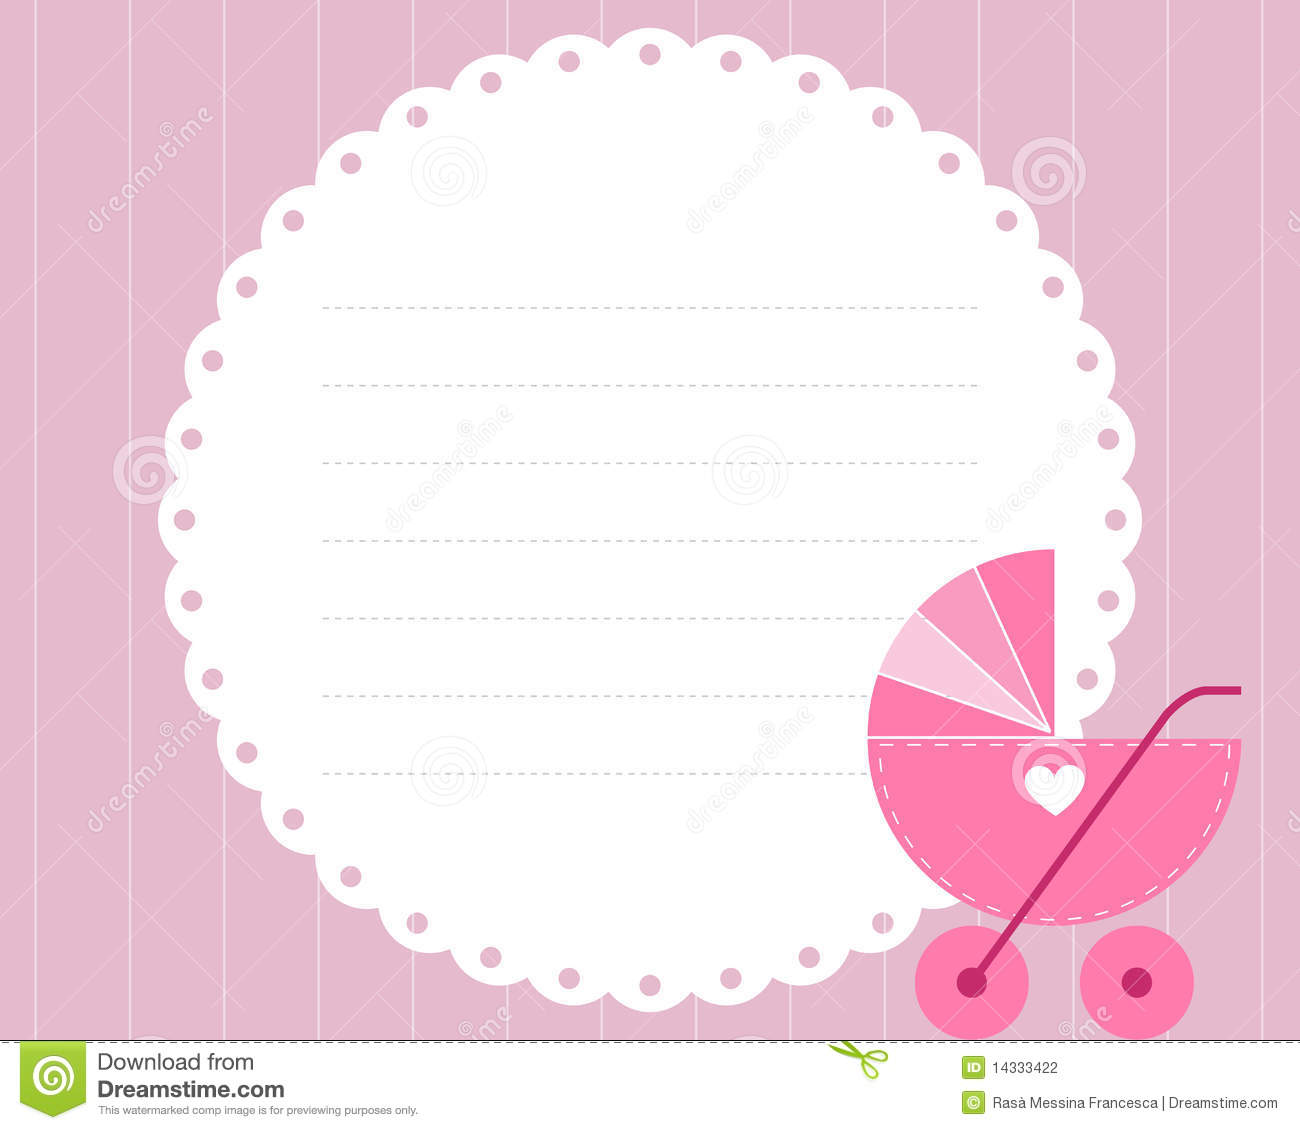 Baby Shower Invitation Card Template was good invitations ideas